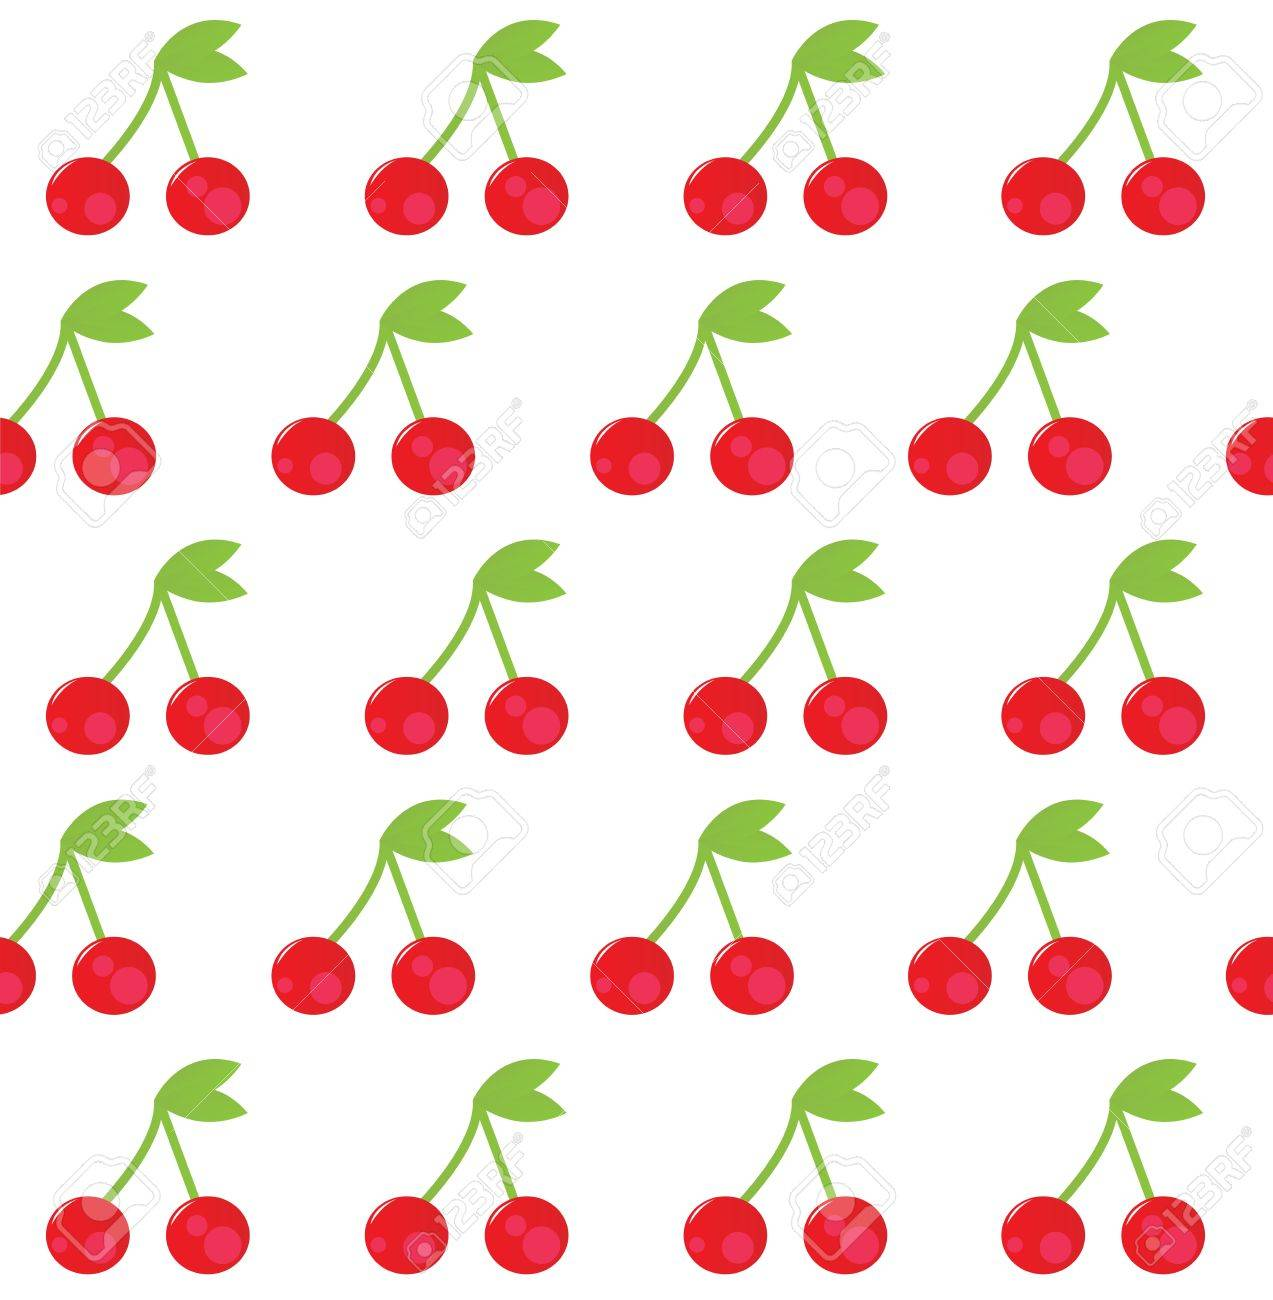 Cute Cherries Background Cherry Seamless Background or